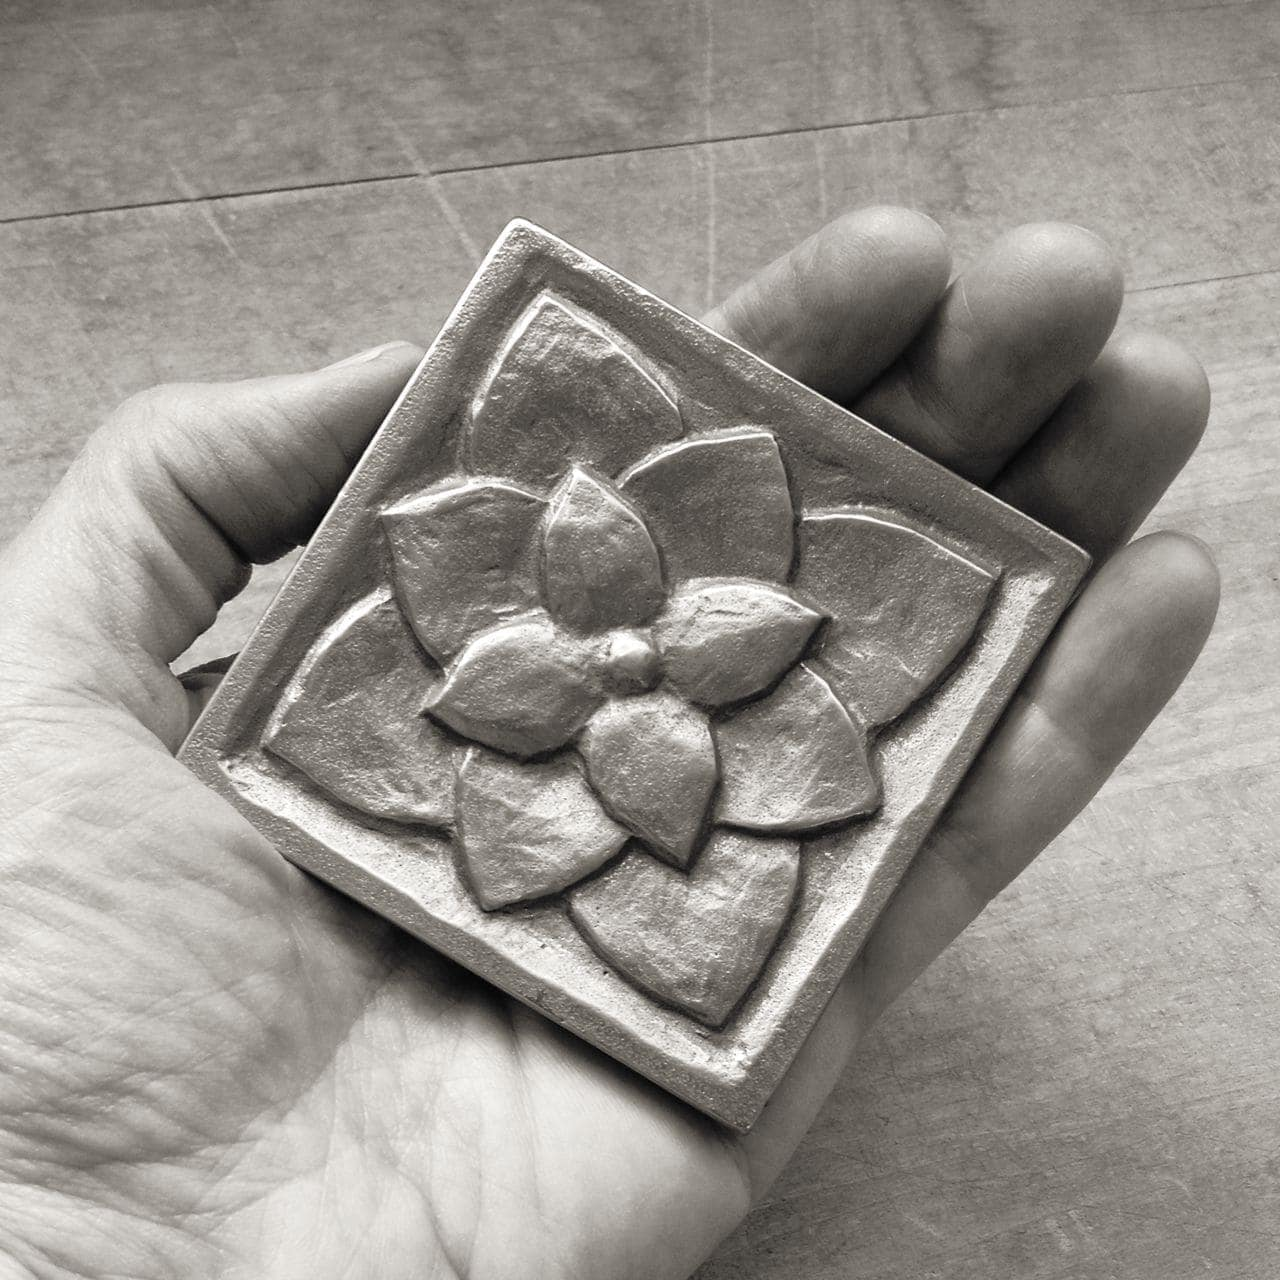 Foundry Art Lotus 3-inch metal accent inset tile in hand